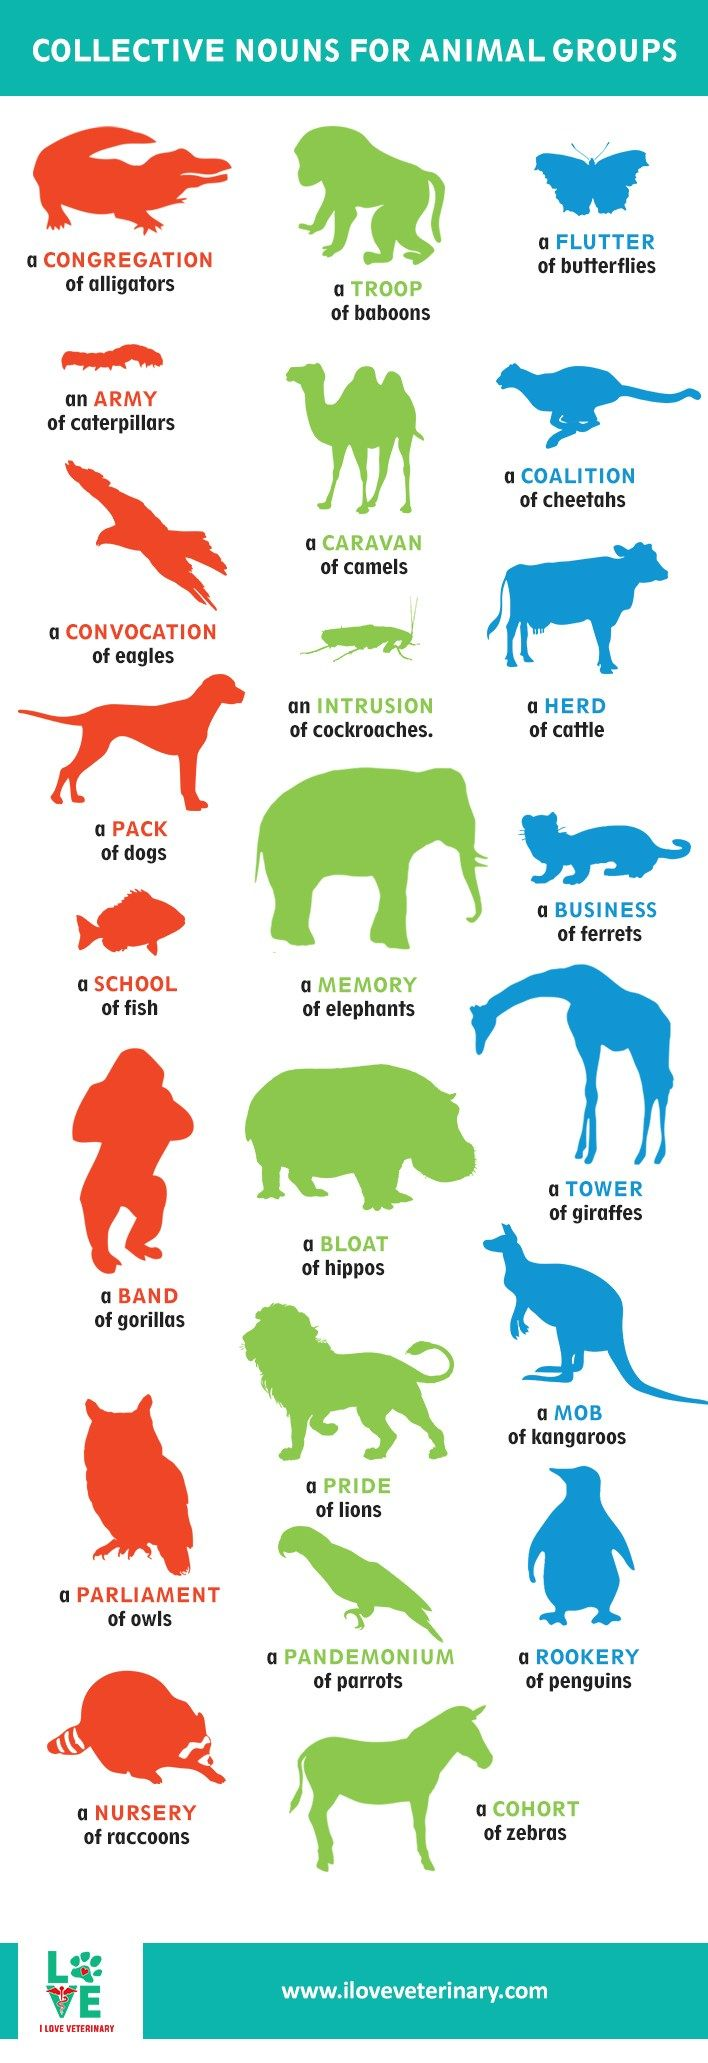 Collective Nouns for Animal Groups I Love Veterinary